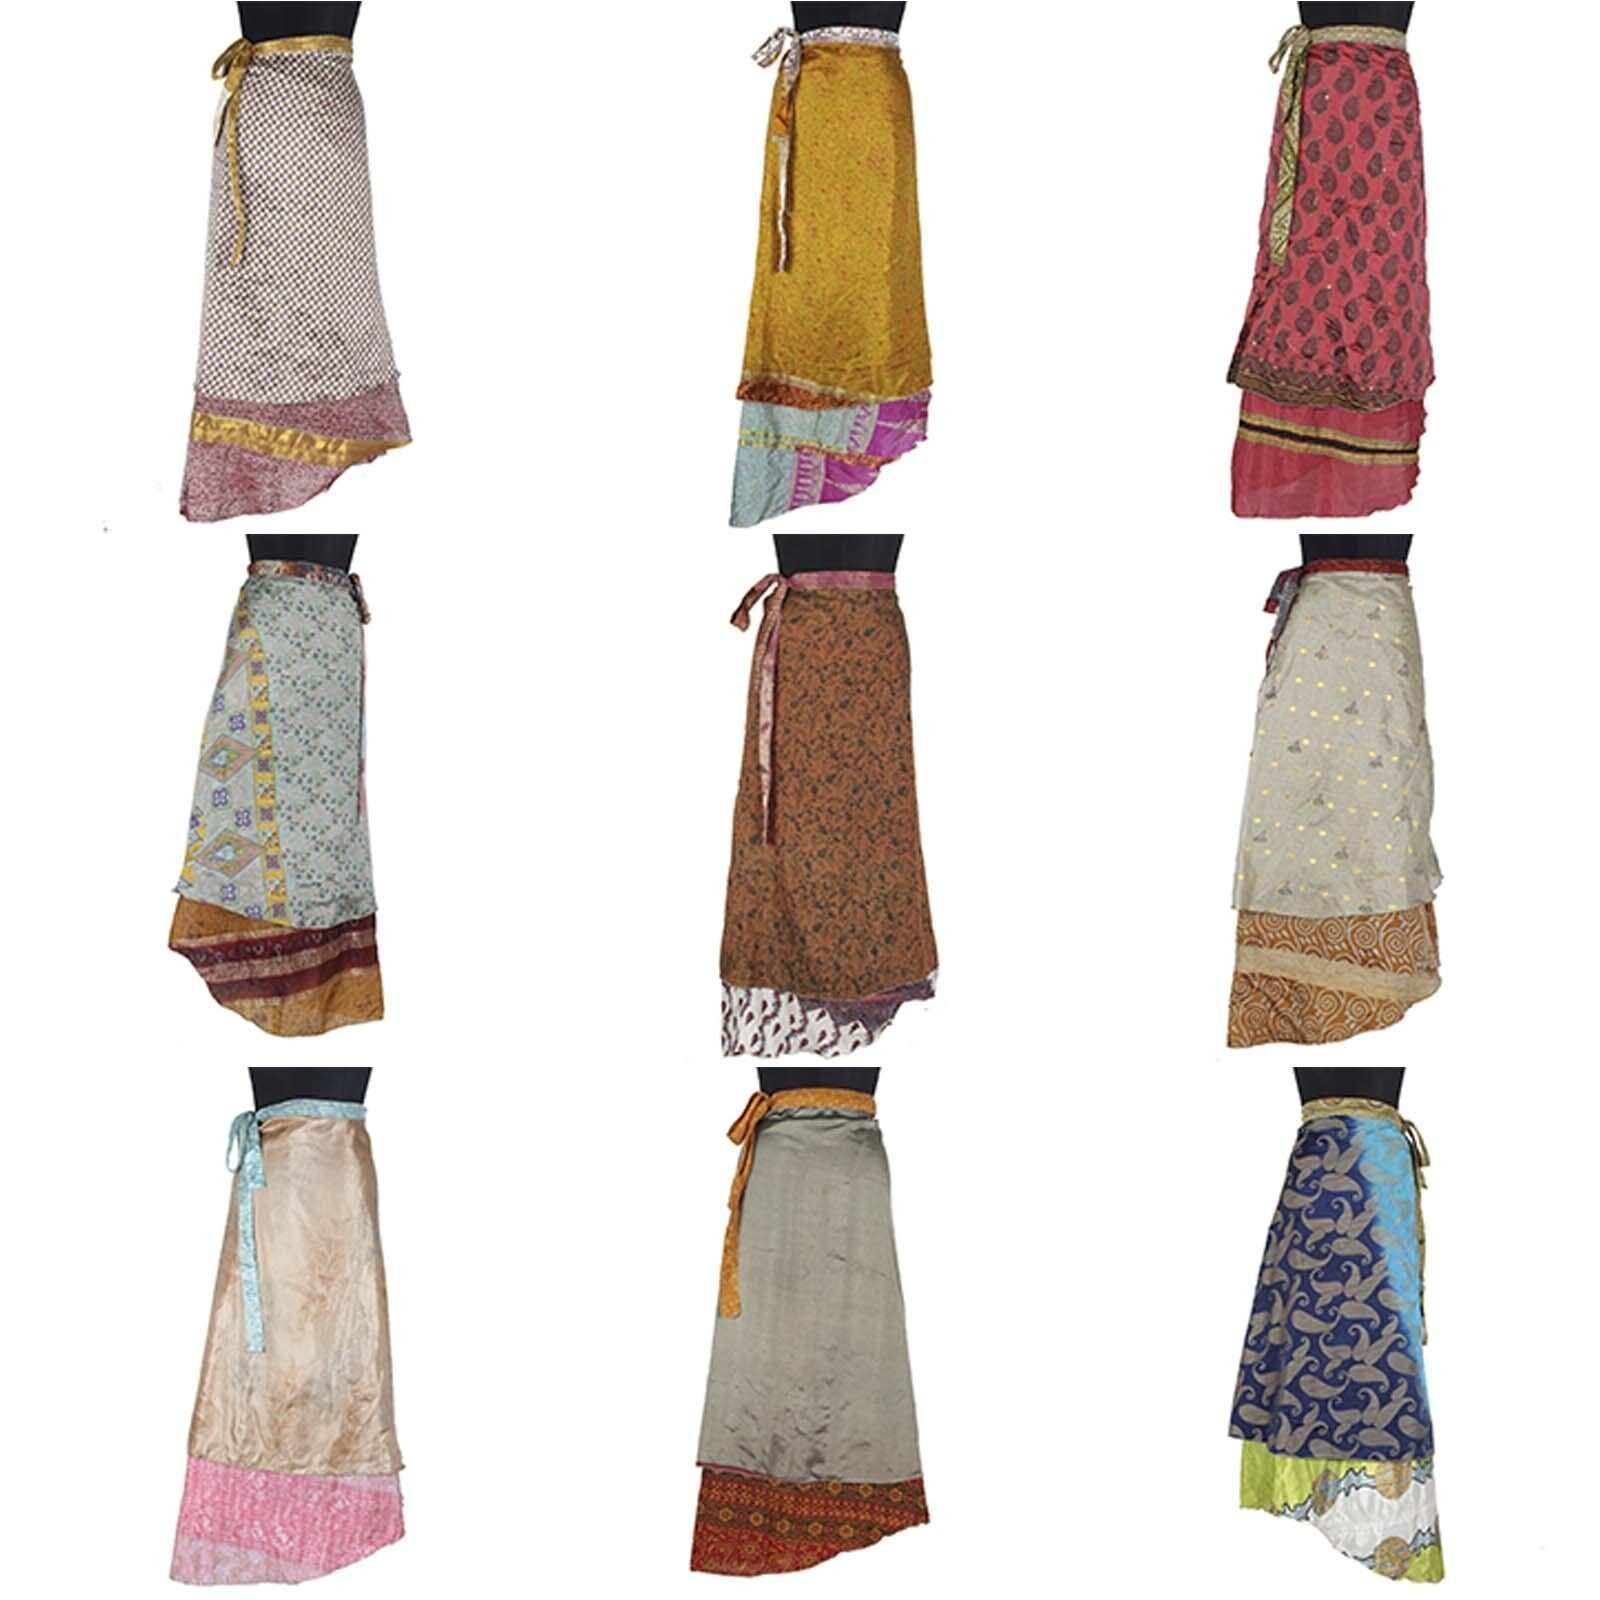 10 Pcs Mix Vintage Silk Dress Magic Wrap Halter Sarong Wrap Skirts 50